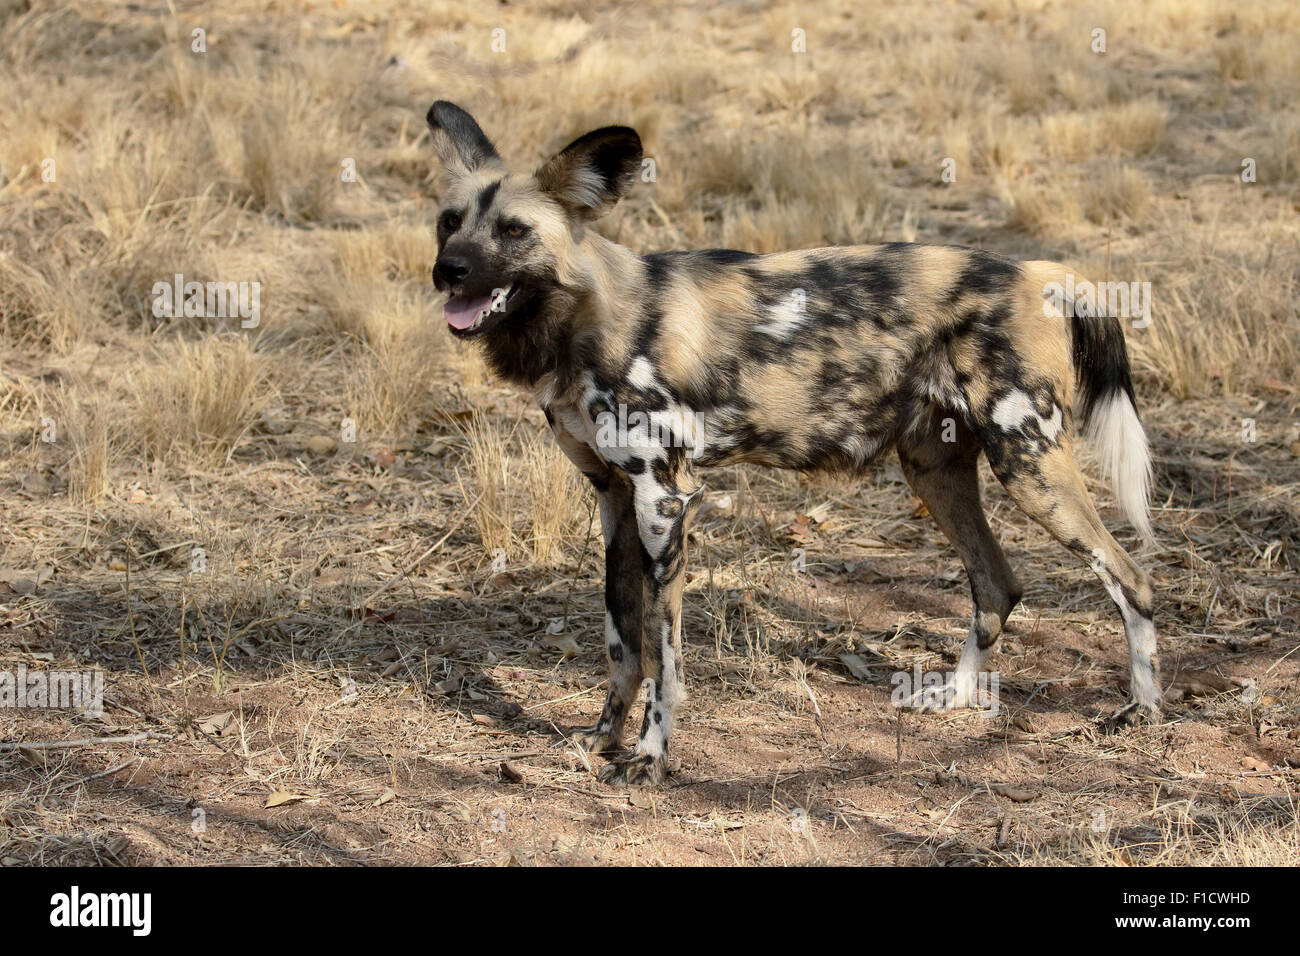 Cape hunting dog, Lycaon pictus, single mammal, South Africa, August 2015 - Stock Image